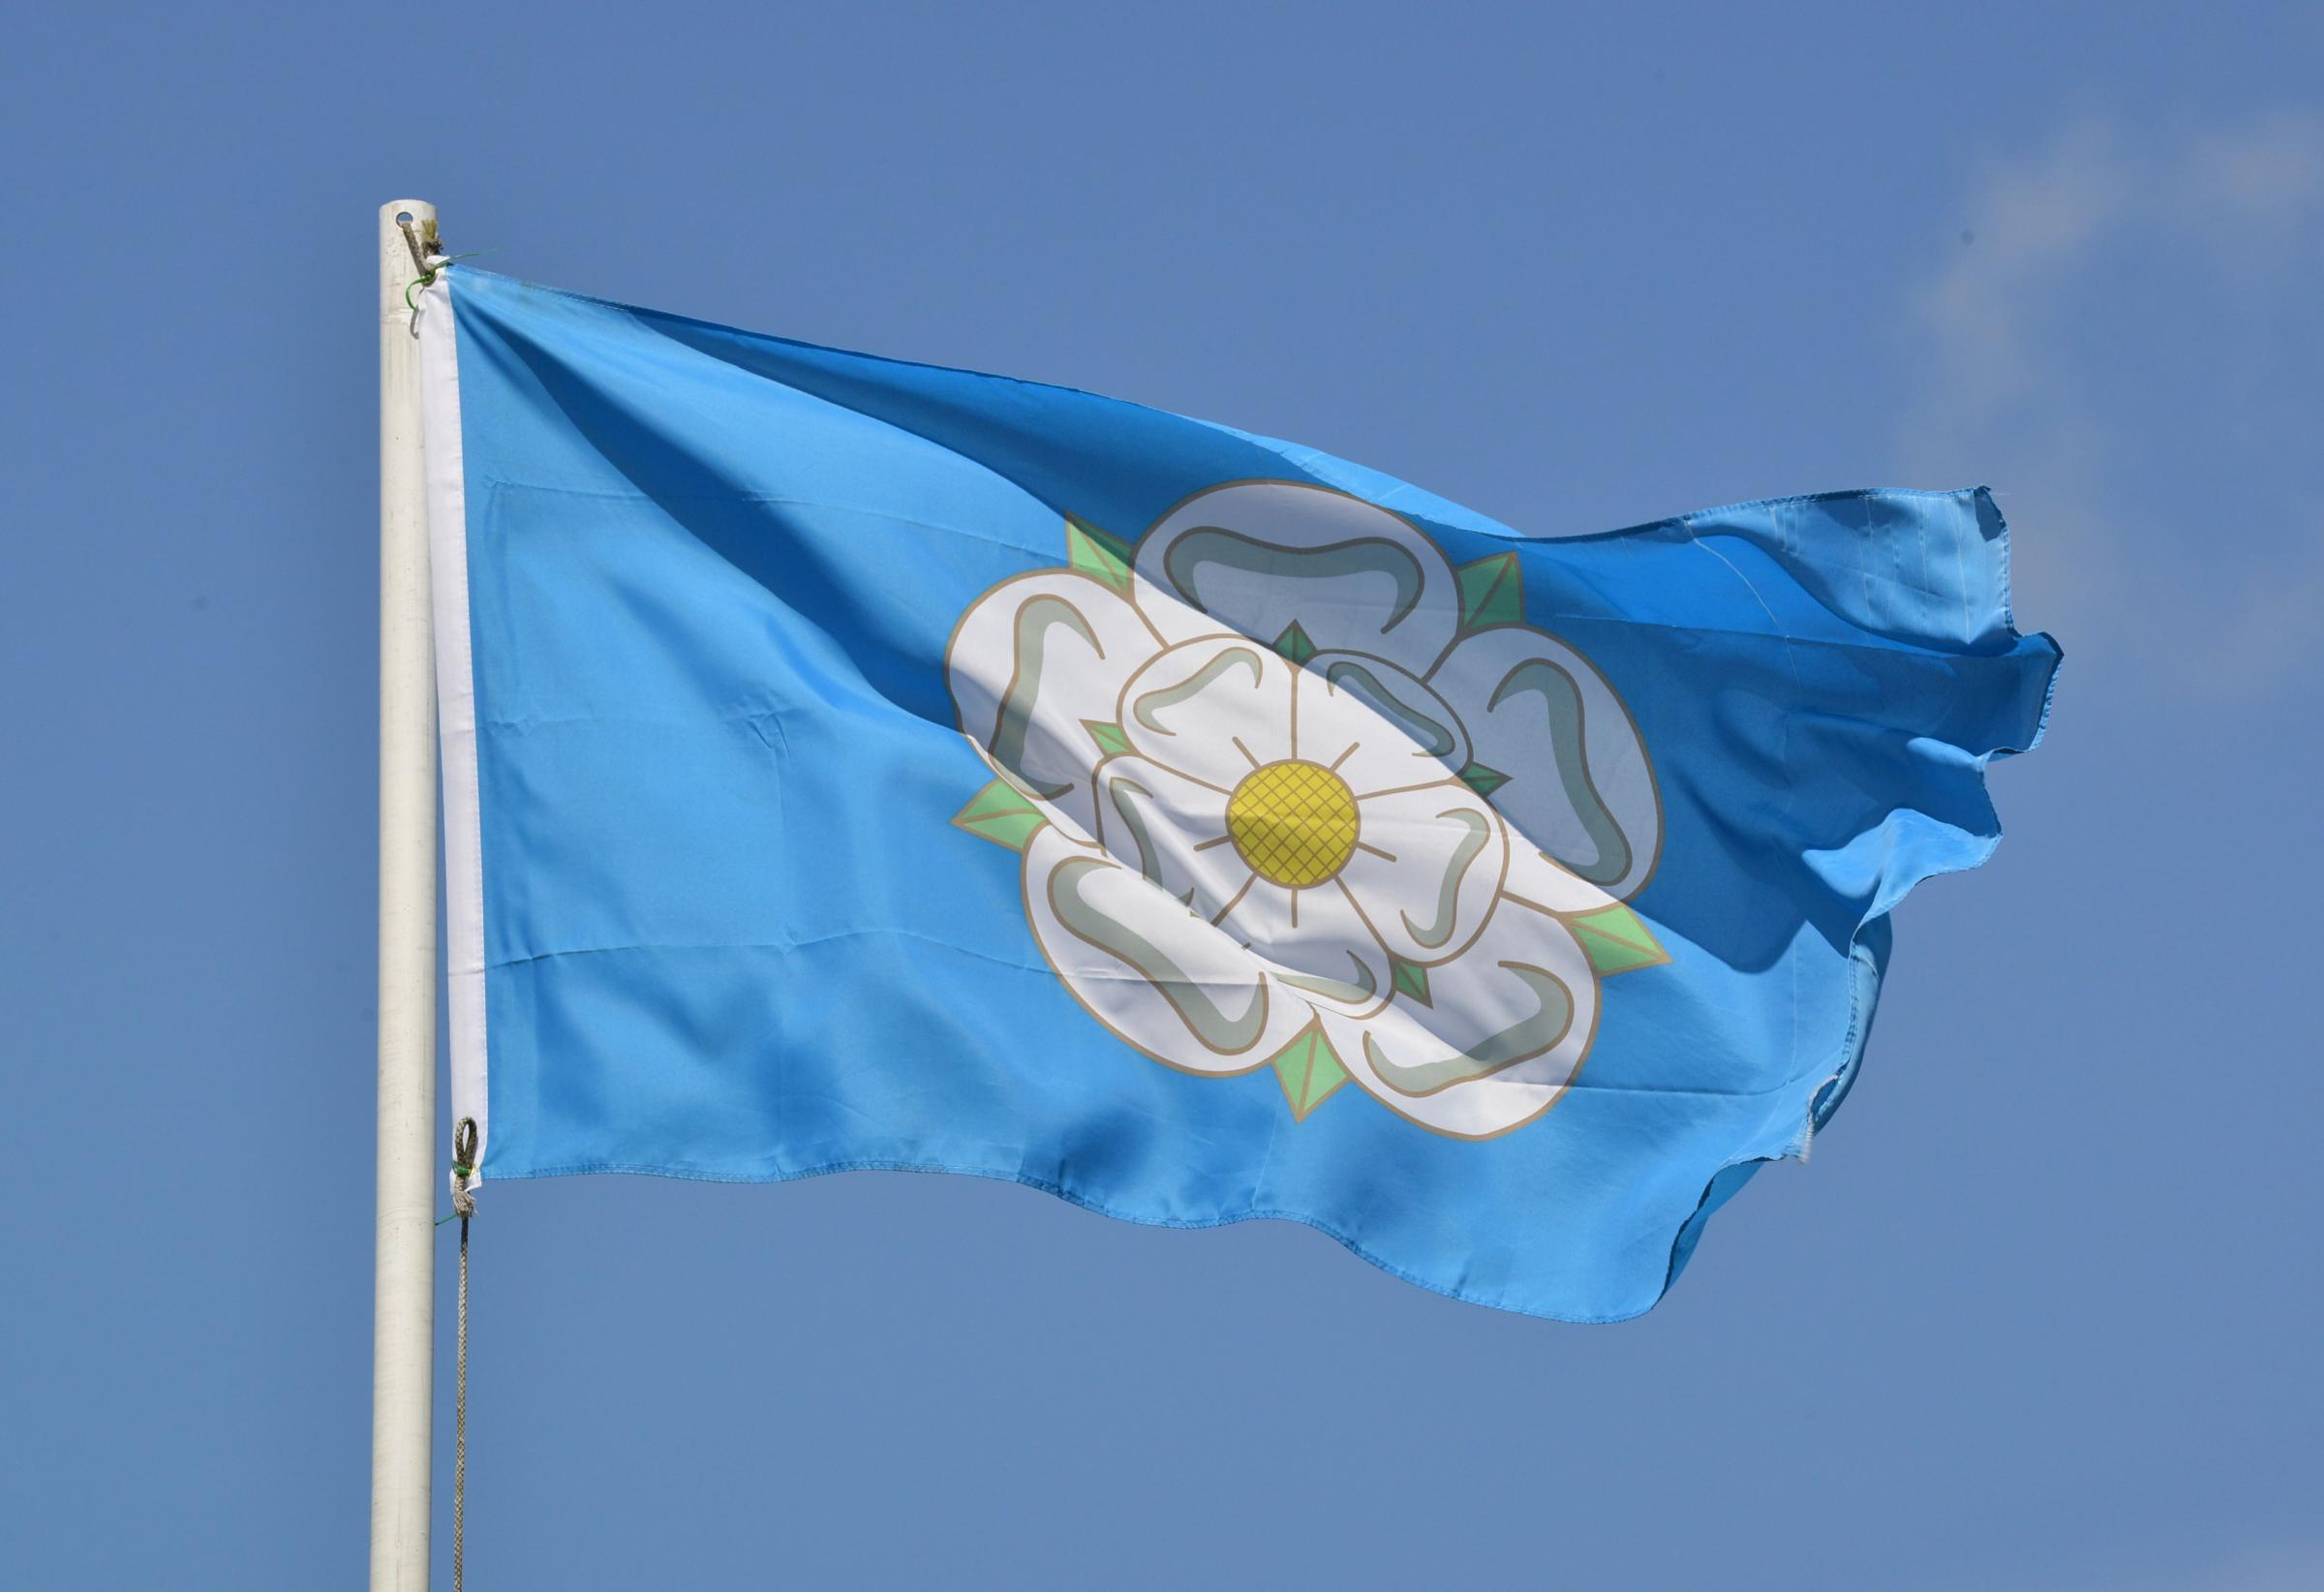 The Yorkshire White Rose Flag